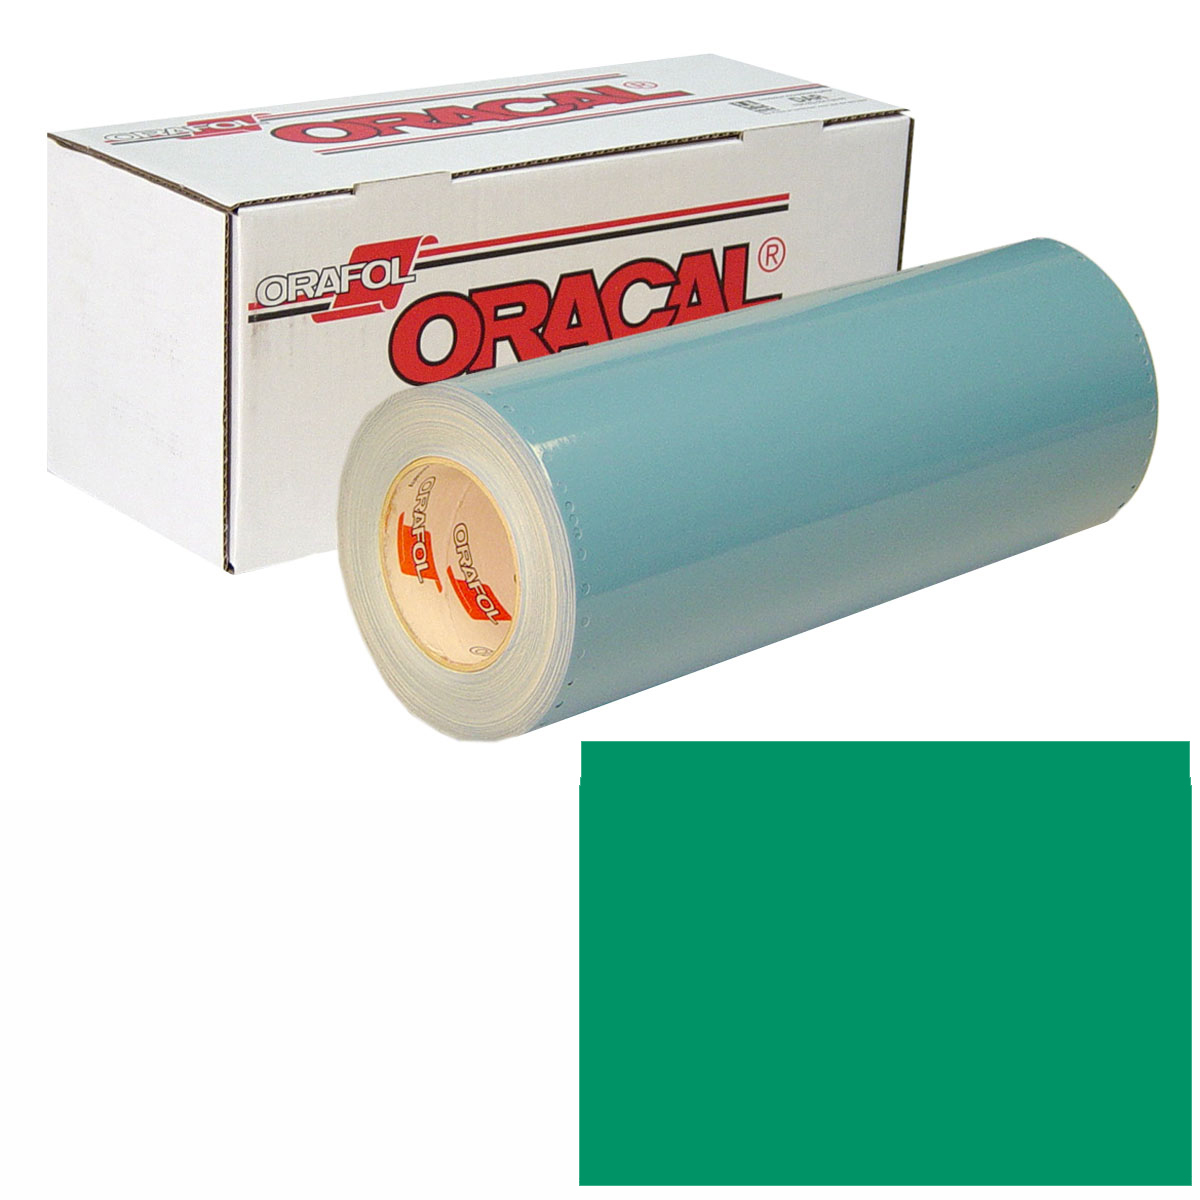 ORACAL 751 15in X 10yd 061 Green